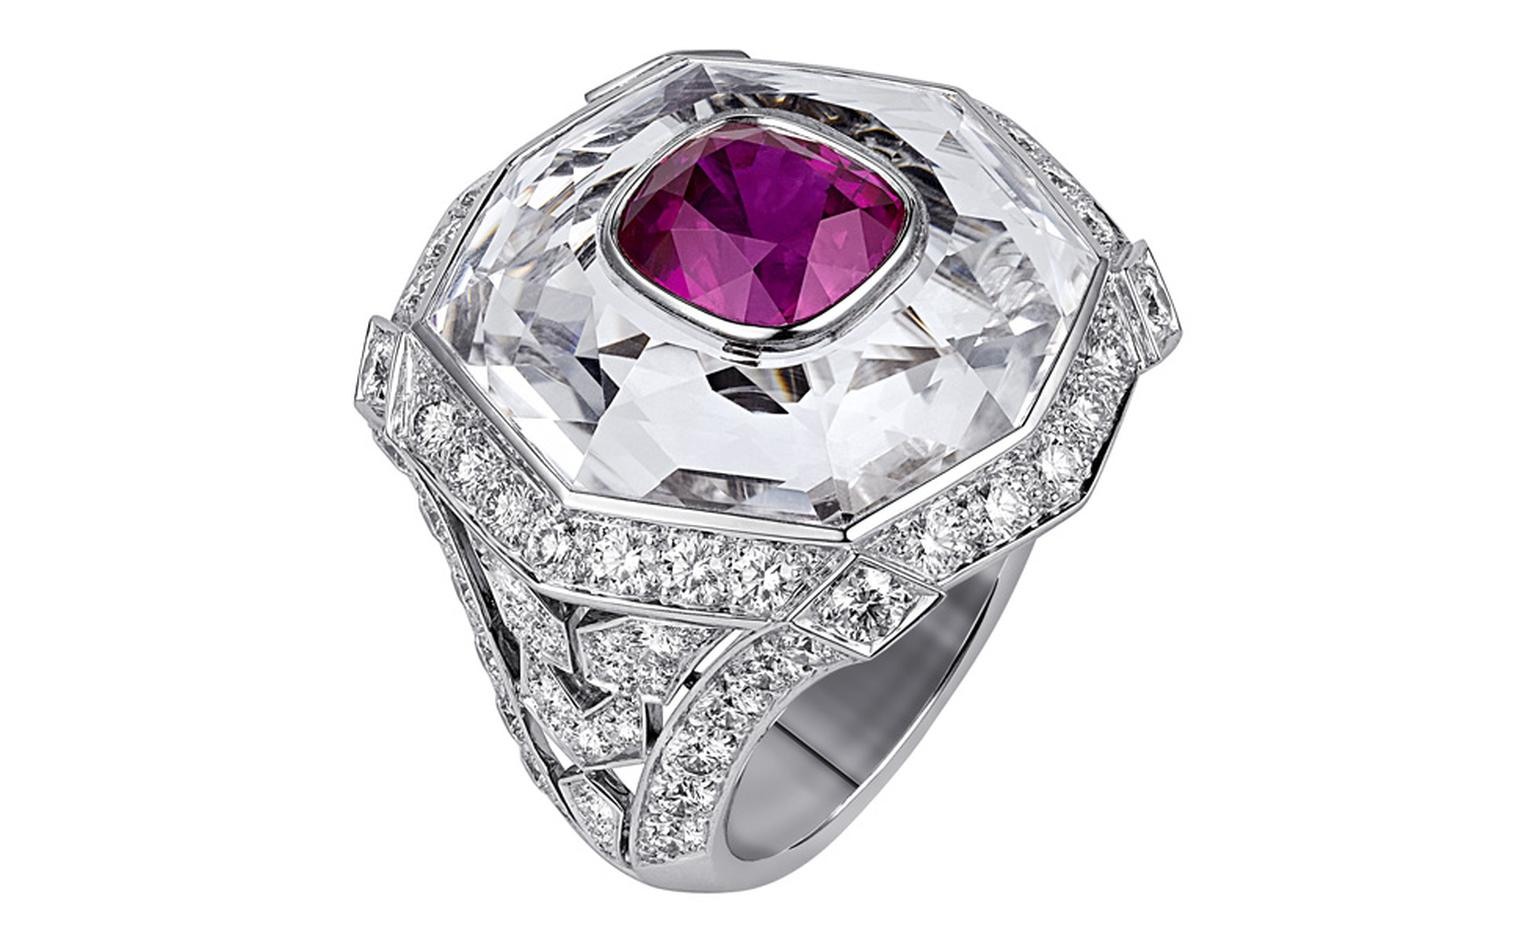 Sortilège de Cartier stone within stone ring